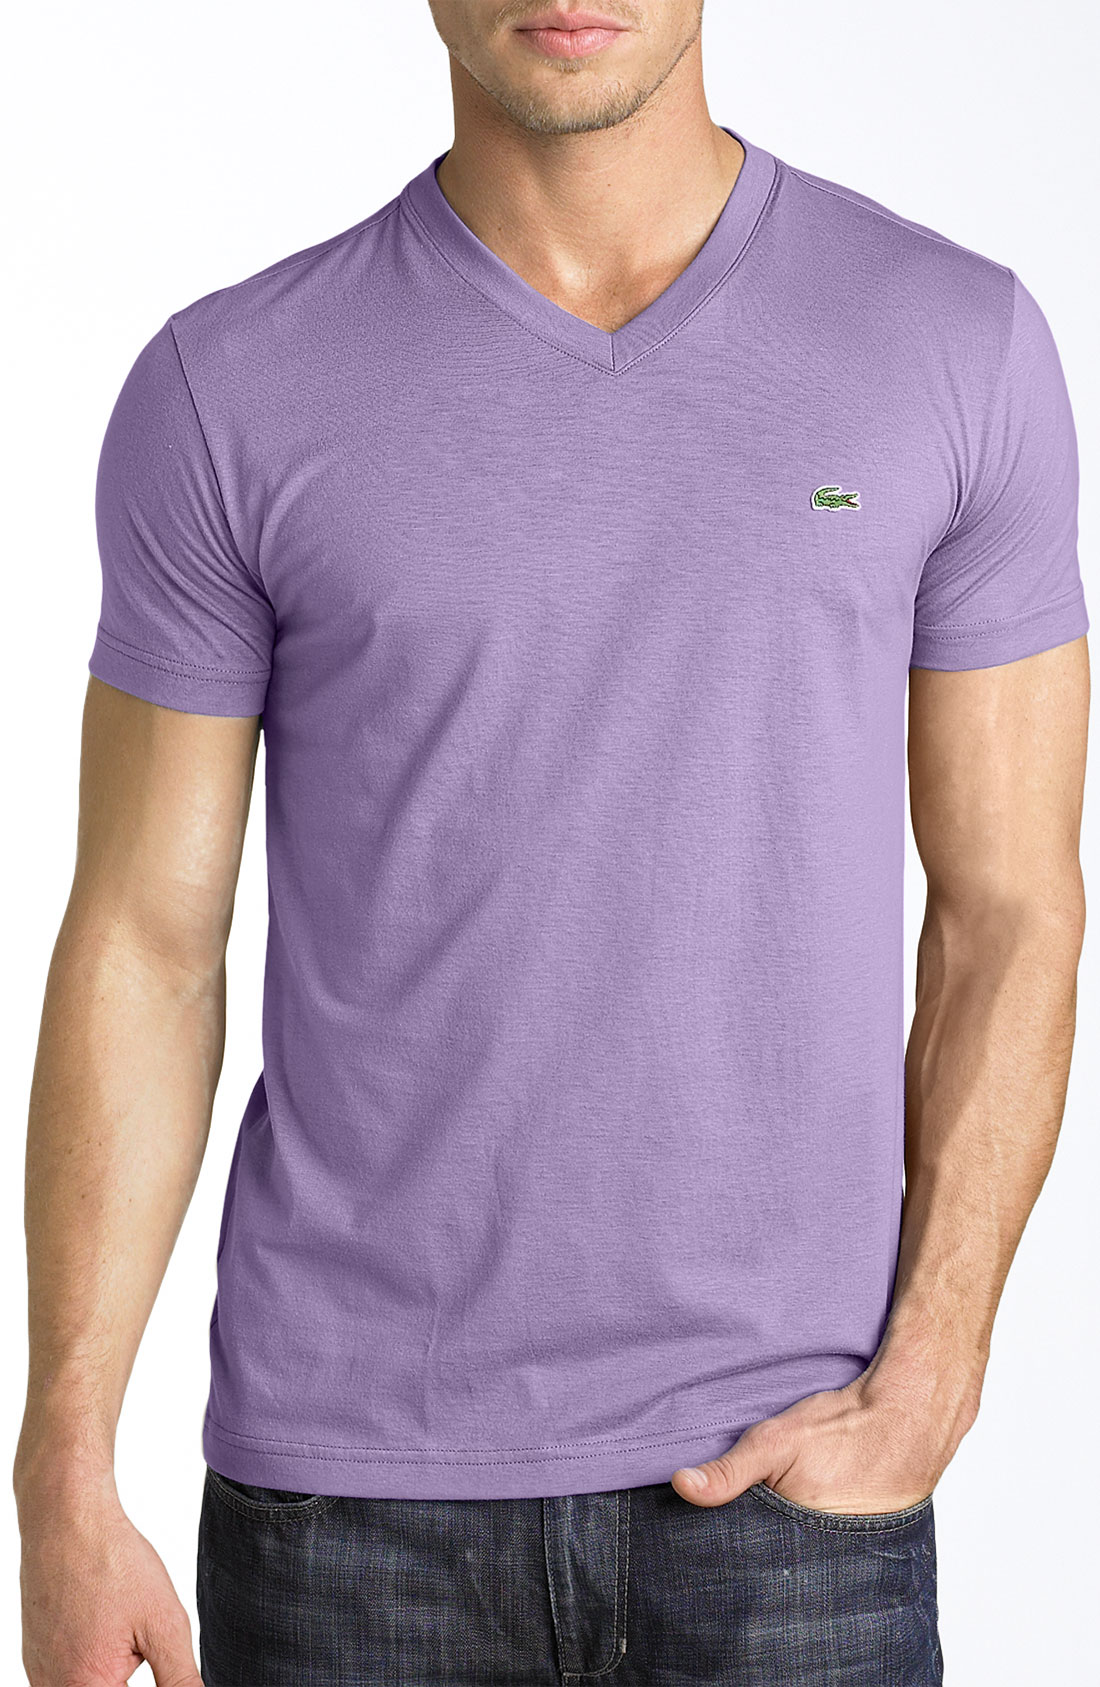 lyst lacoste v neck tshirt in purple for men. Black Bedroom Furniture Sets. Home Design Ideas